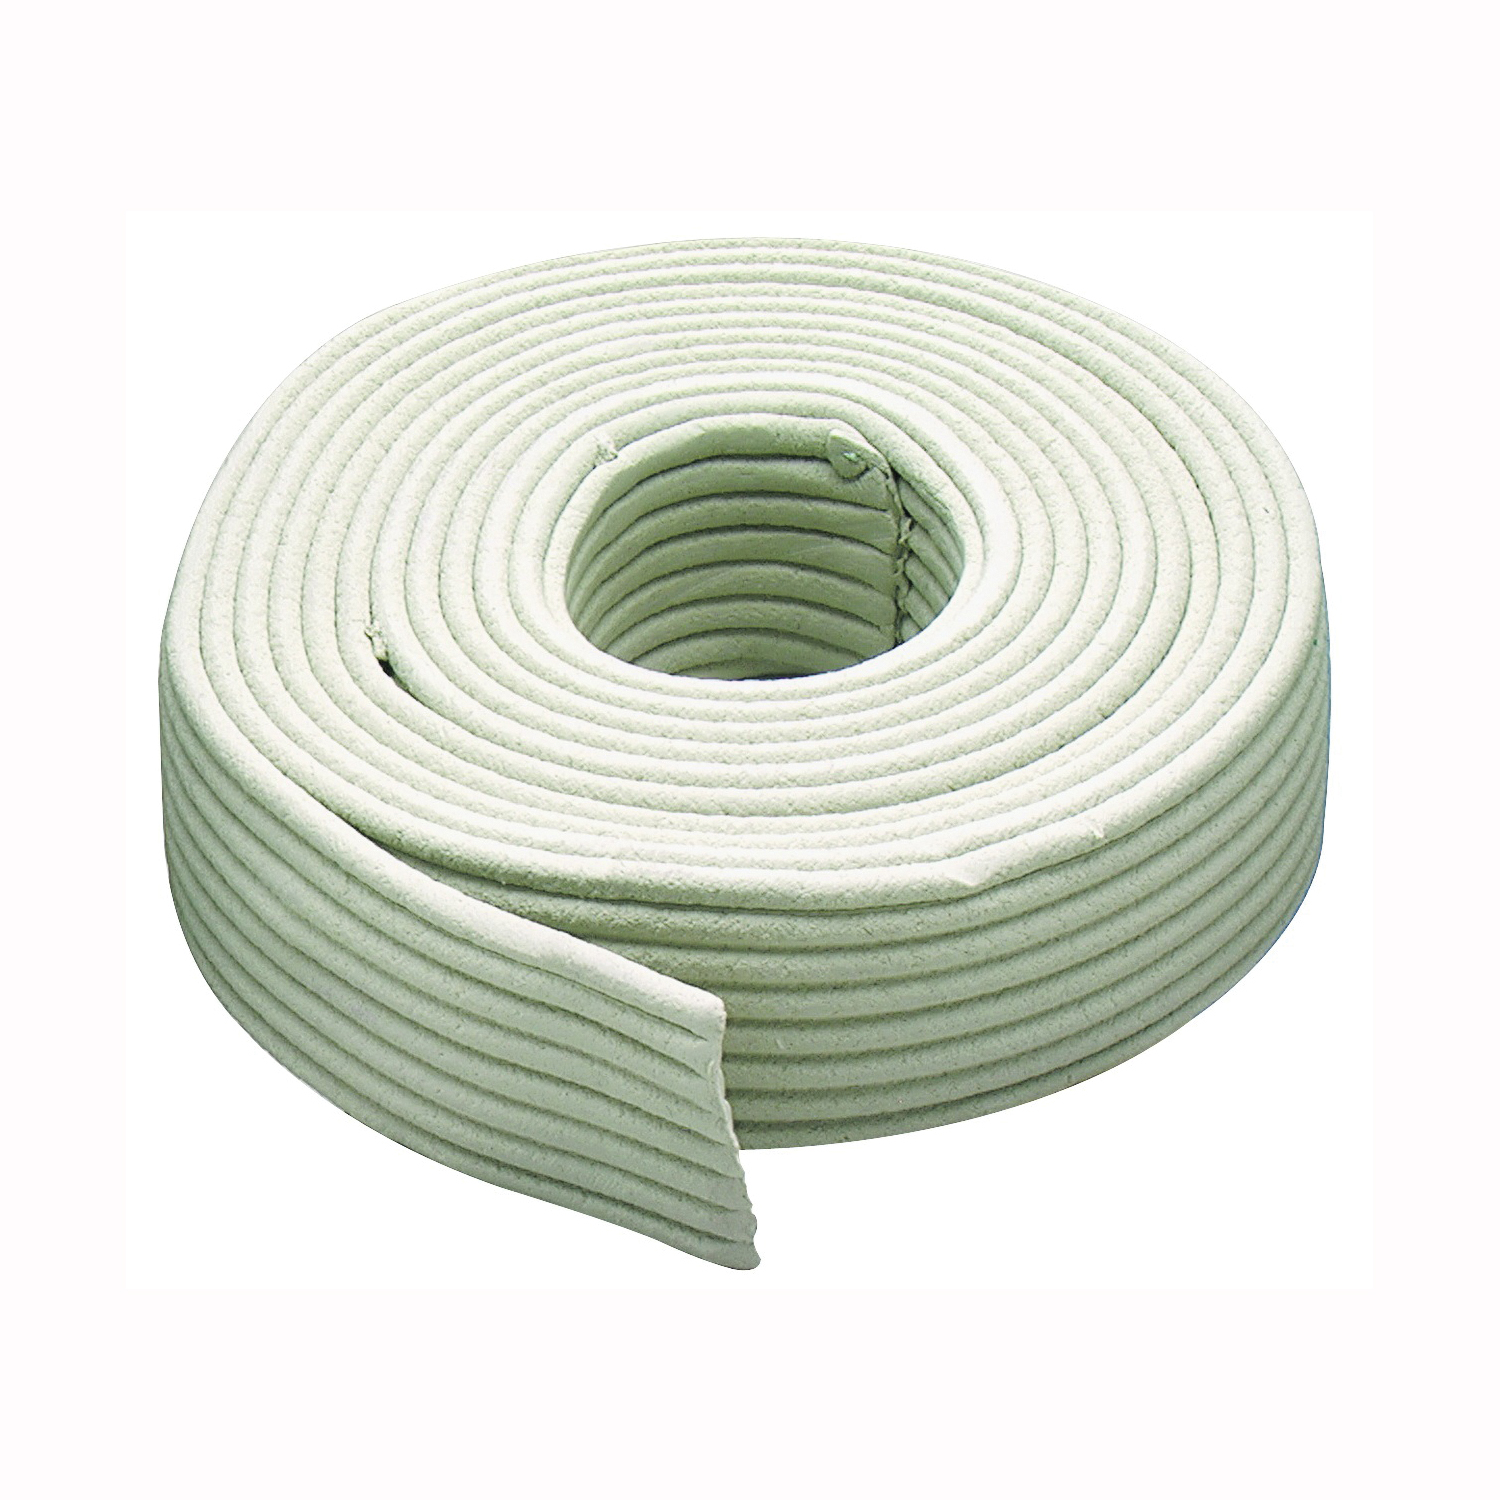 Picture of M-D 71522 Caulking Cord, 30 ft L, Gray